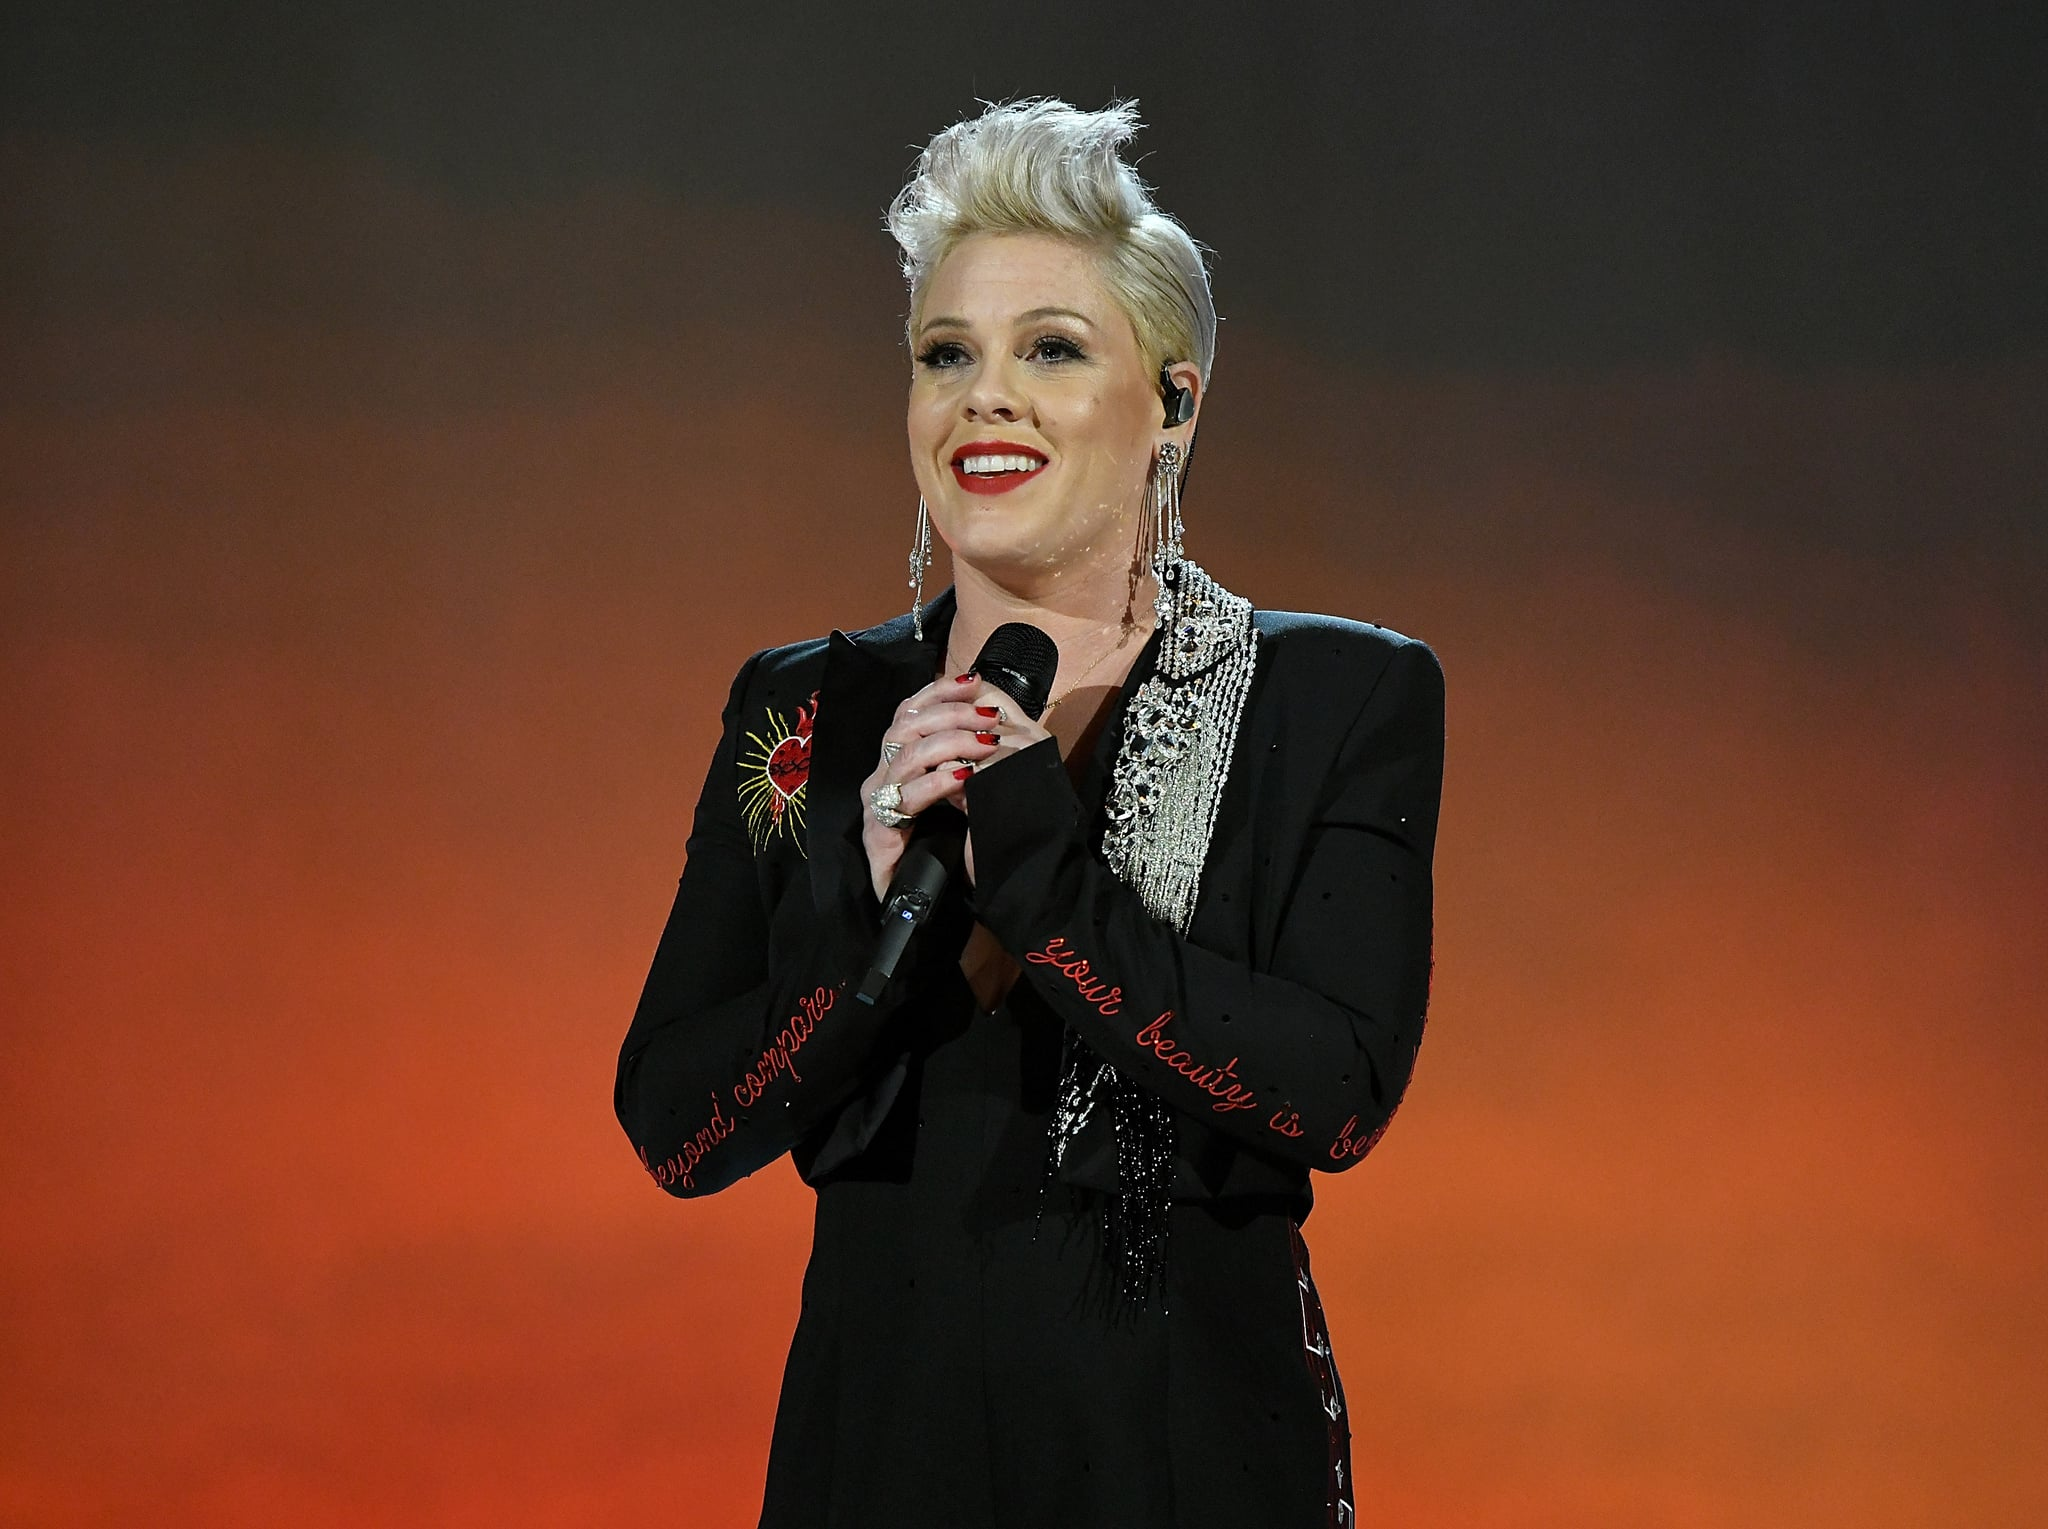 LOS ANGELES, CA - FEBRUARY 08:  P!nk performs onstage at MusiCares Person of the Year honoring Dolly Parton at Los Angeles Convention Center on February 8, 2019 in Los Angeles, California.  (Photo by Michael Kovac/Getty Images for NARAS)